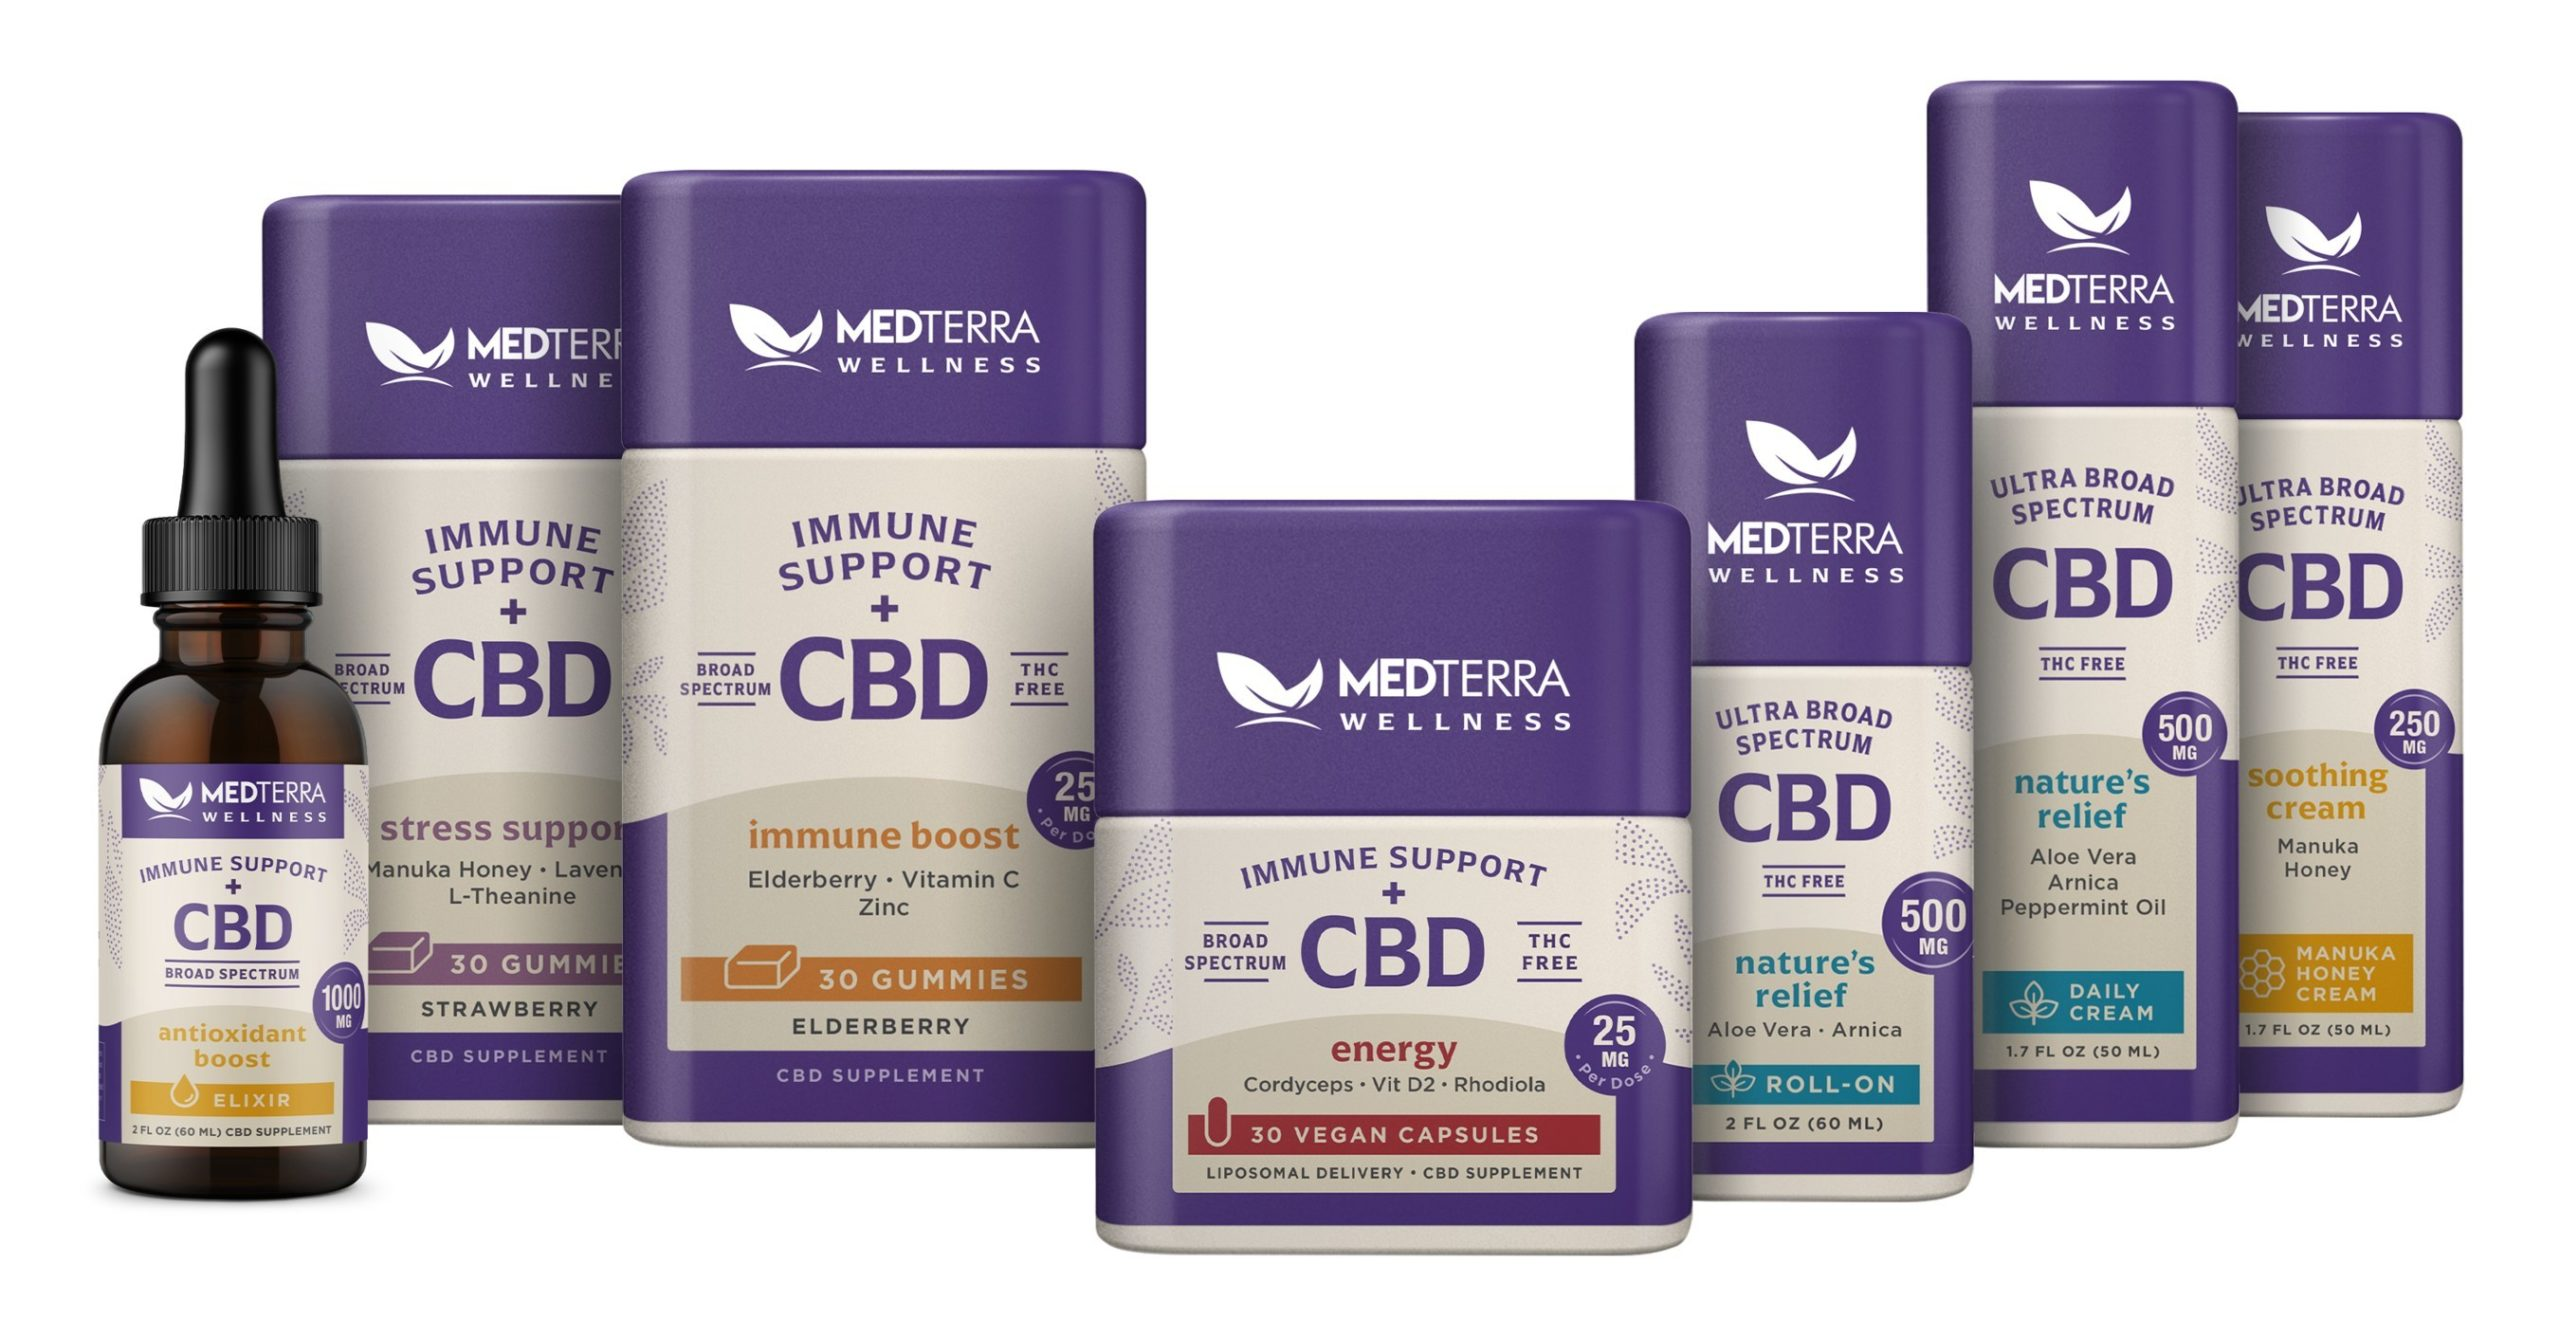 Is Medterra a Publicly-Traded Company?